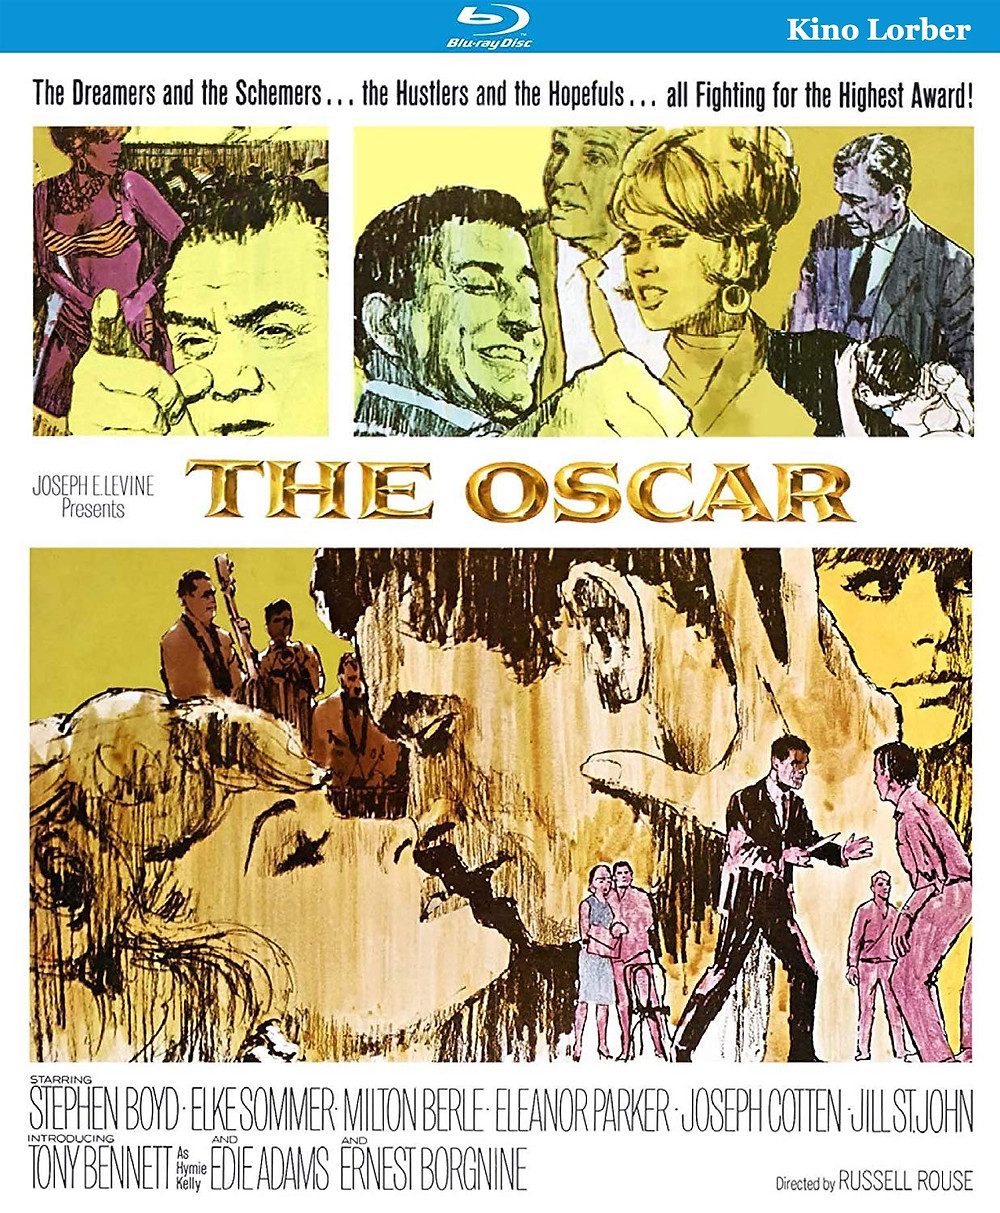 Cover art for Kino Lorber Studio Classics' new release of THE OSCAR.